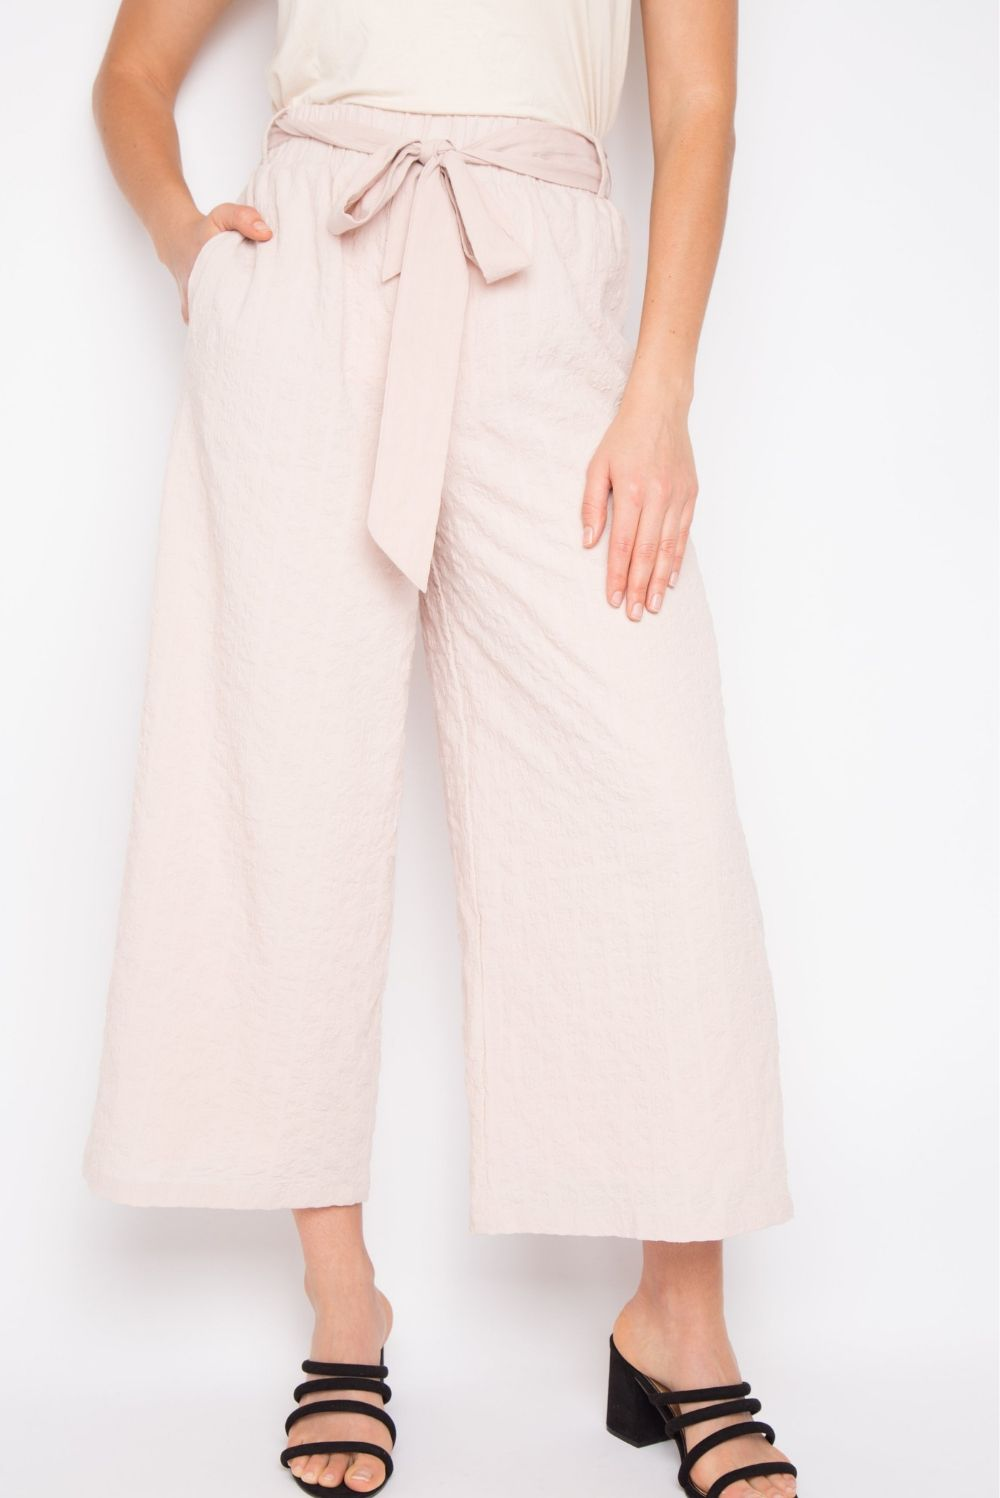 RO Corinth 3/4 Elastic Pant In Blossom